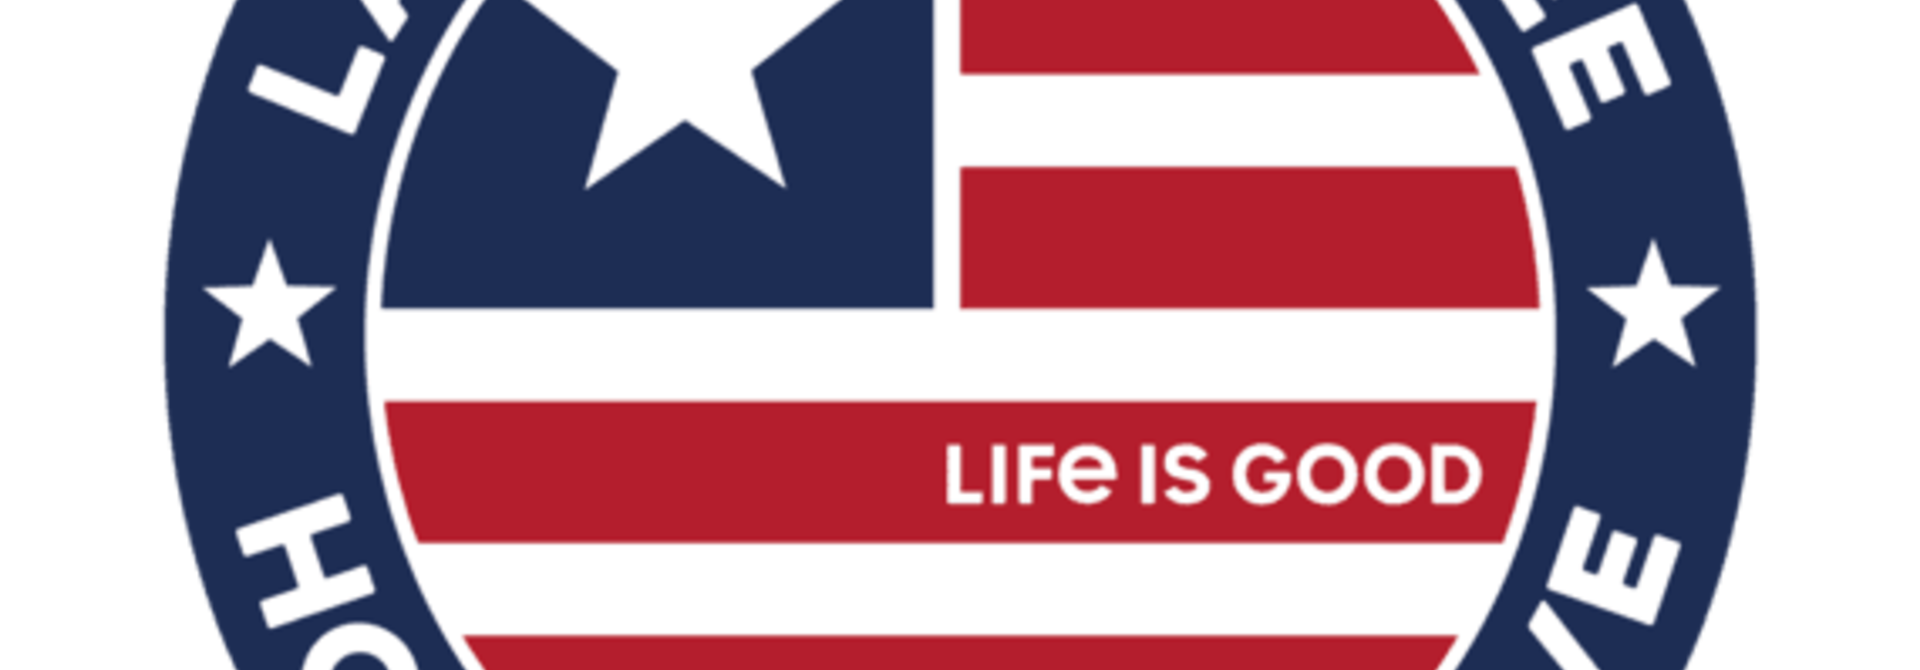 Land of the Free, Small Decal